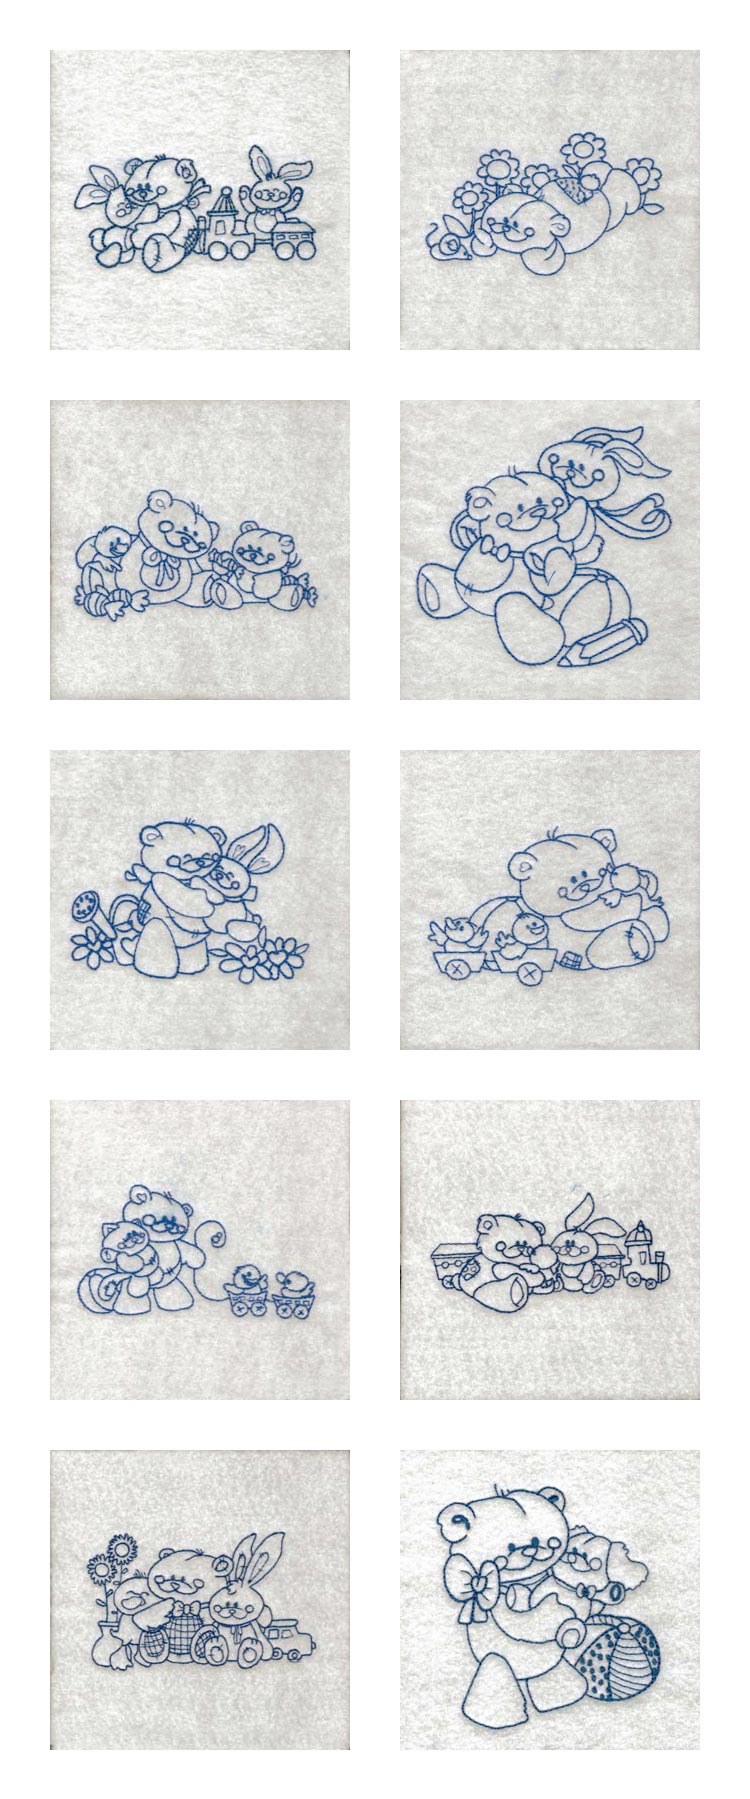 Embroidery machine designs line art teddy bears set